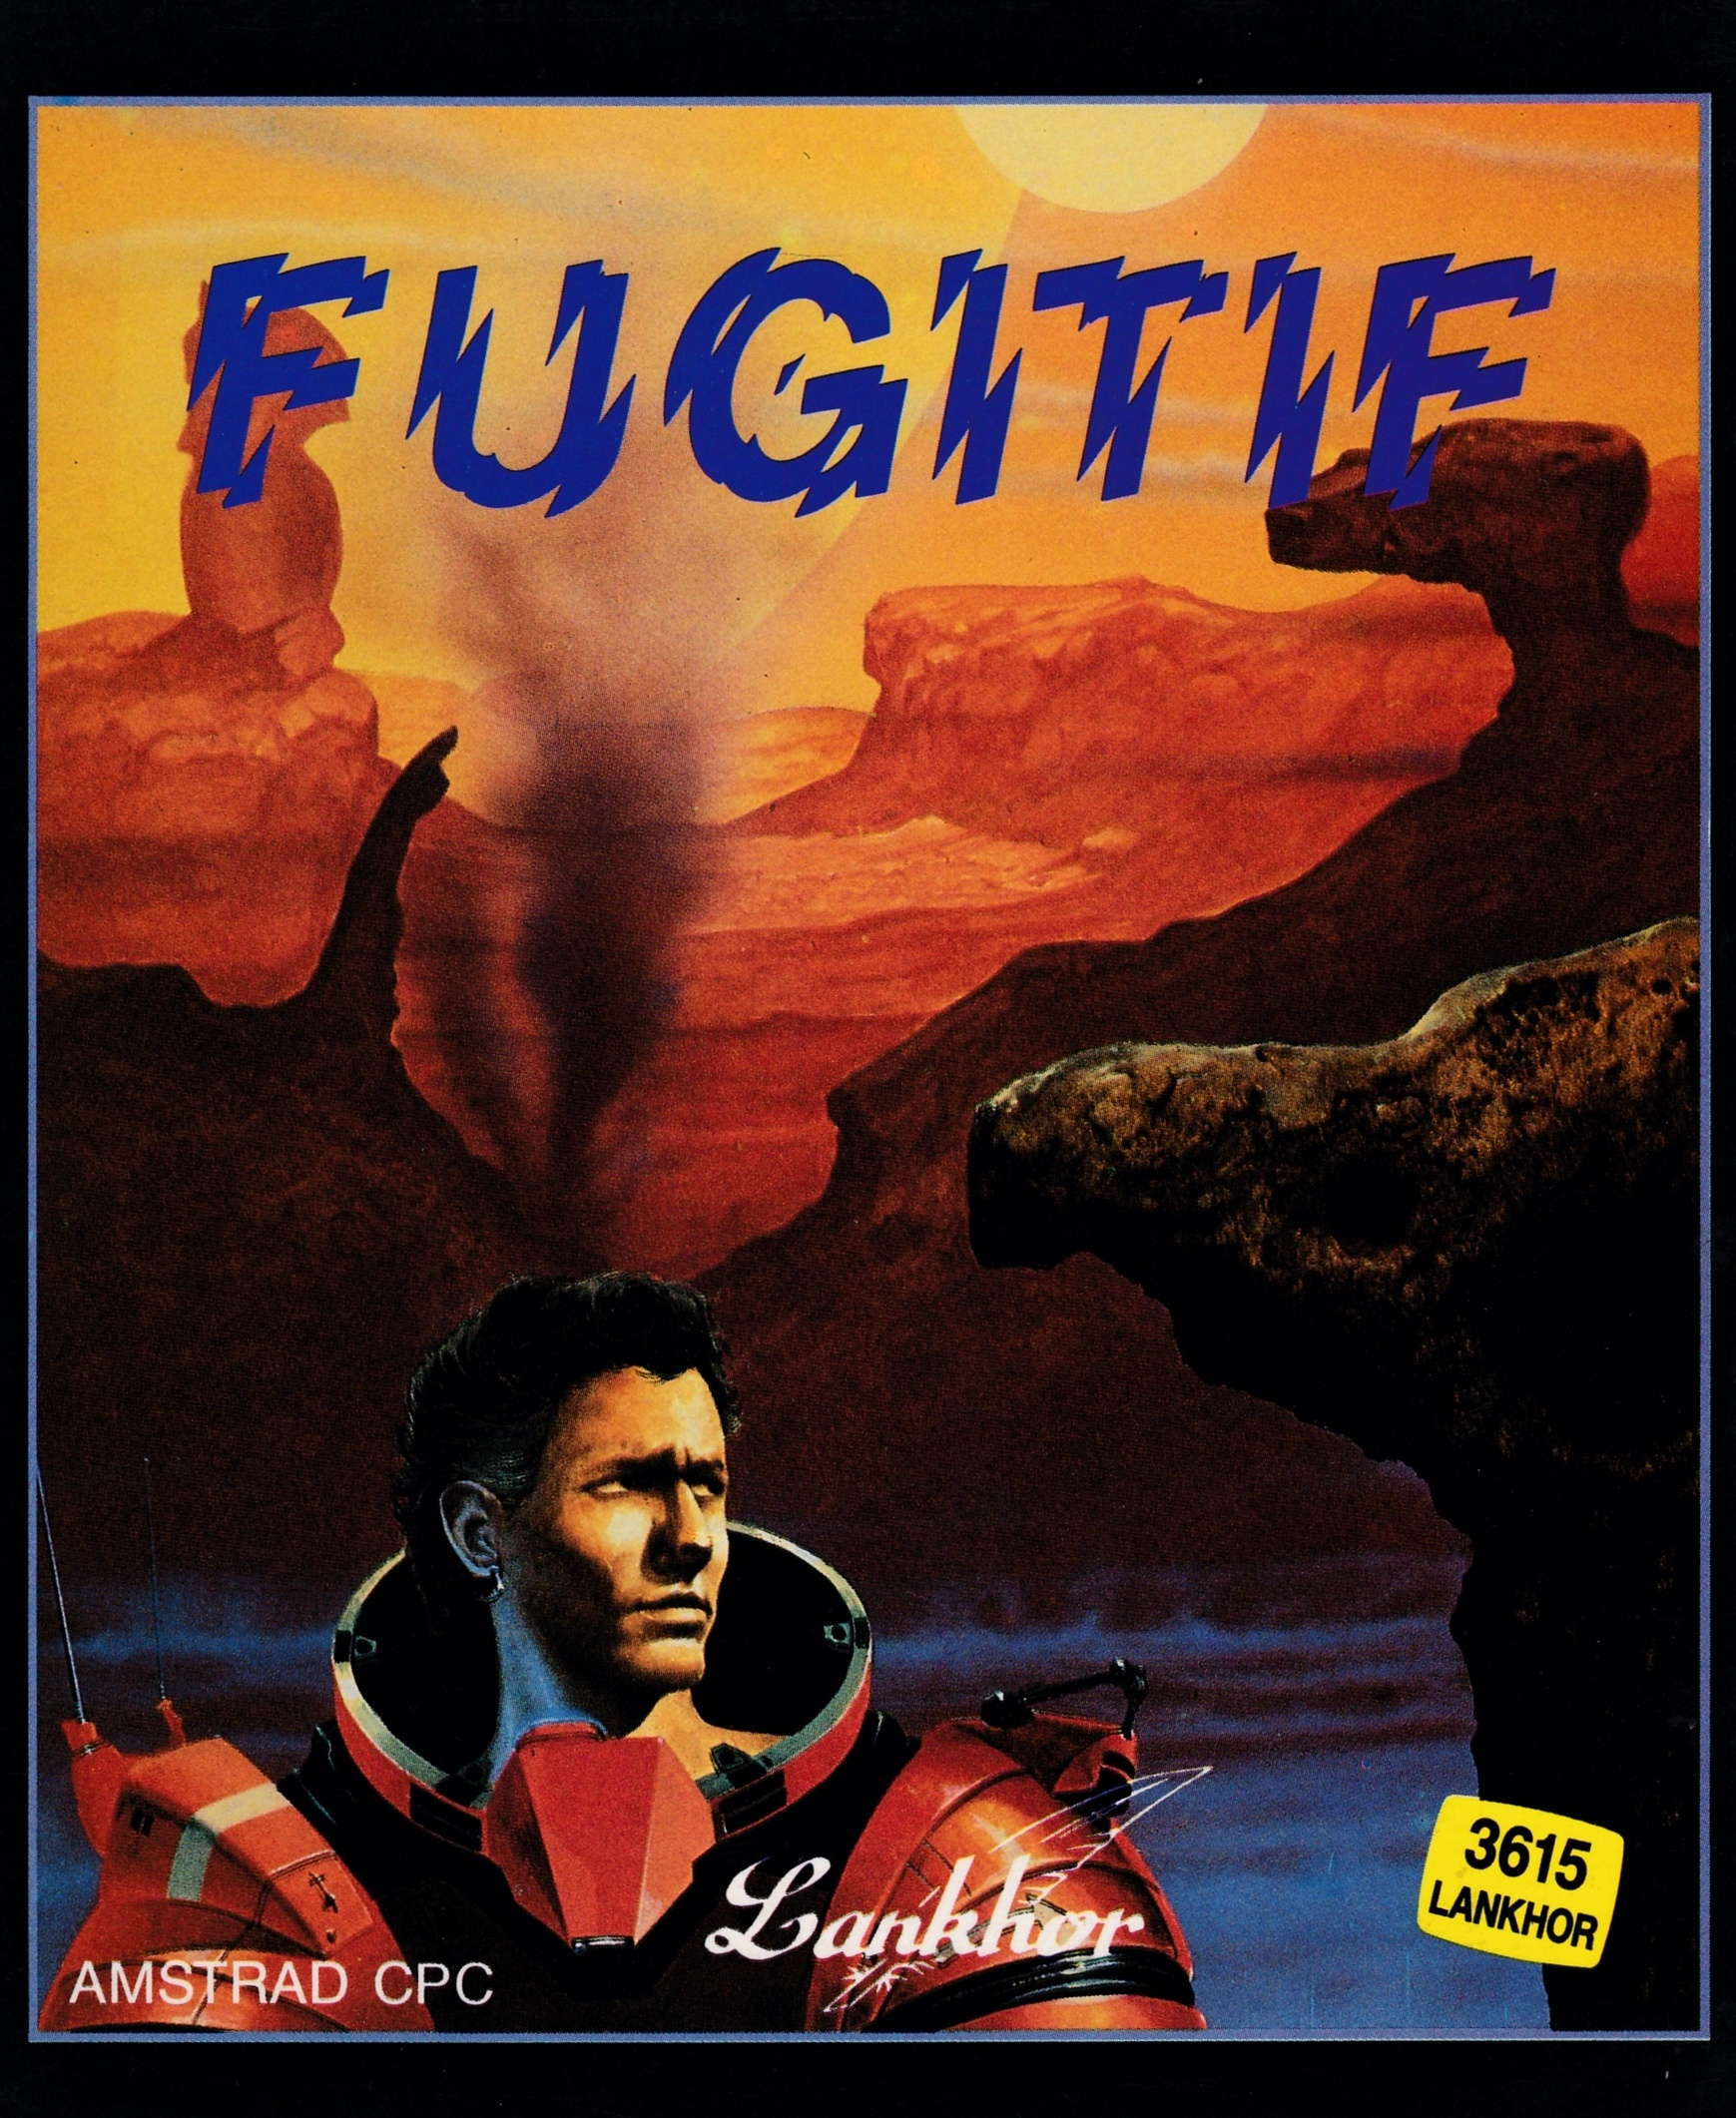 cover of the Amstrad CPC game Fugitif  by GameBase CPC